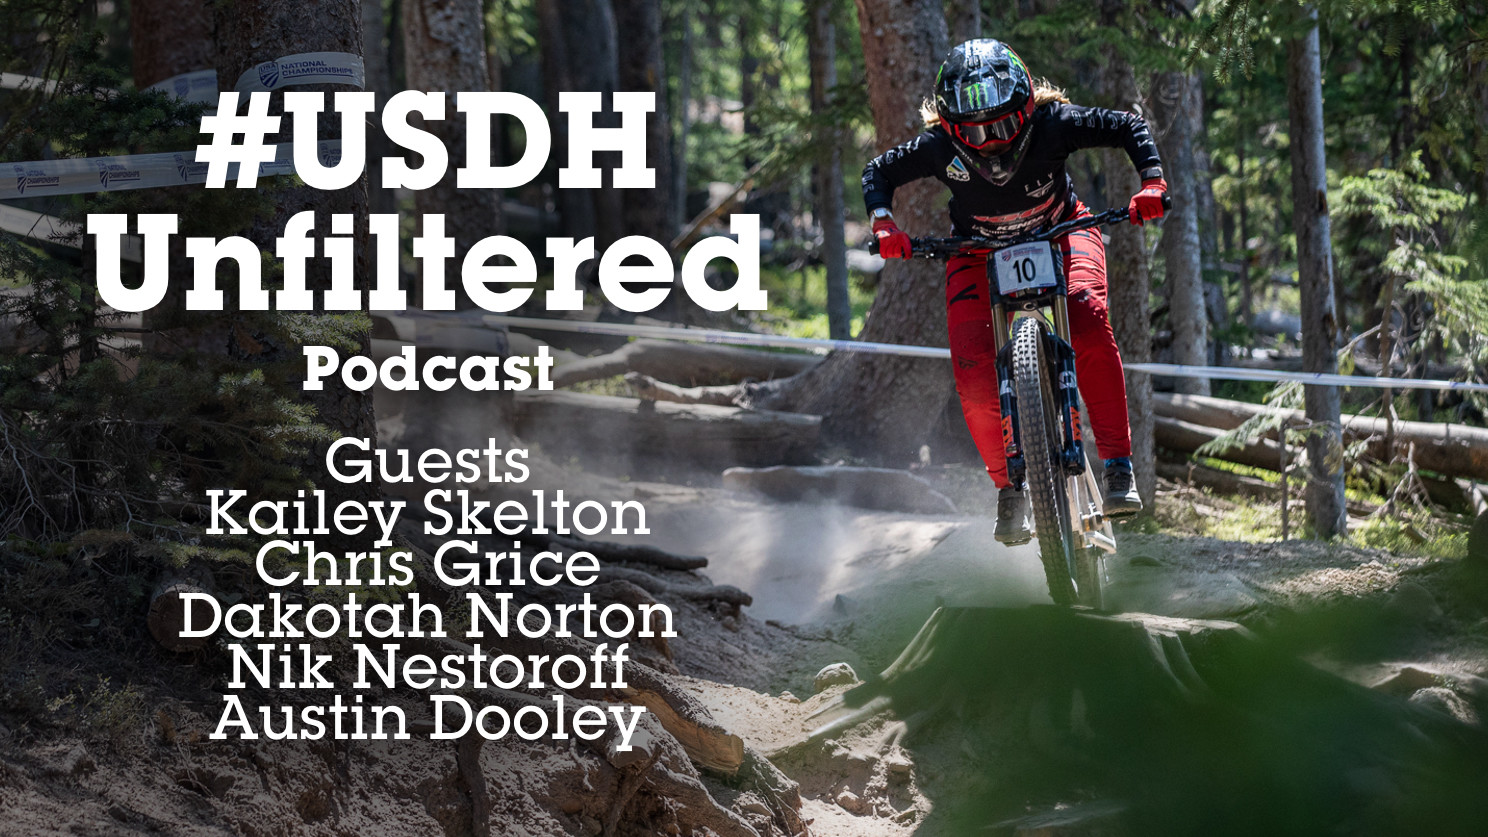 #USDH Unfiltered - National Champs, Kailey Skelton, Chris Grice, Dakotah Norton and More